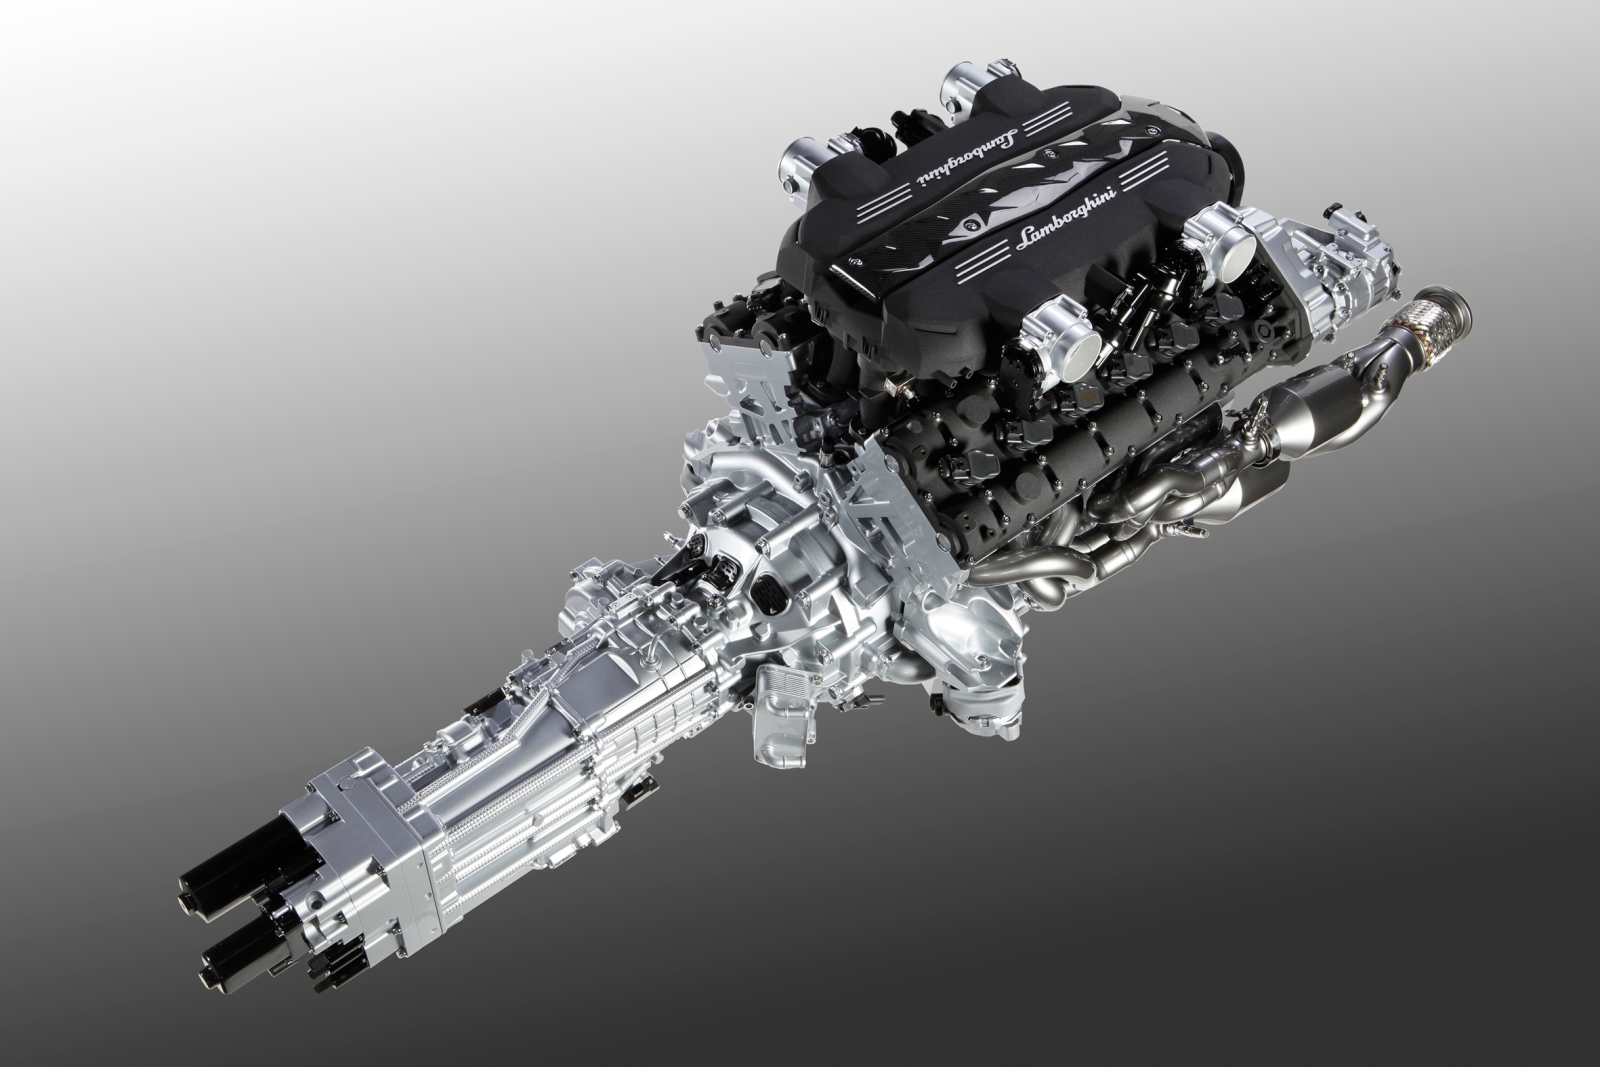 Lamborghini Unveils New 700 Hp 12 Cylinder Powerplant Isr Transmission Autoevolution